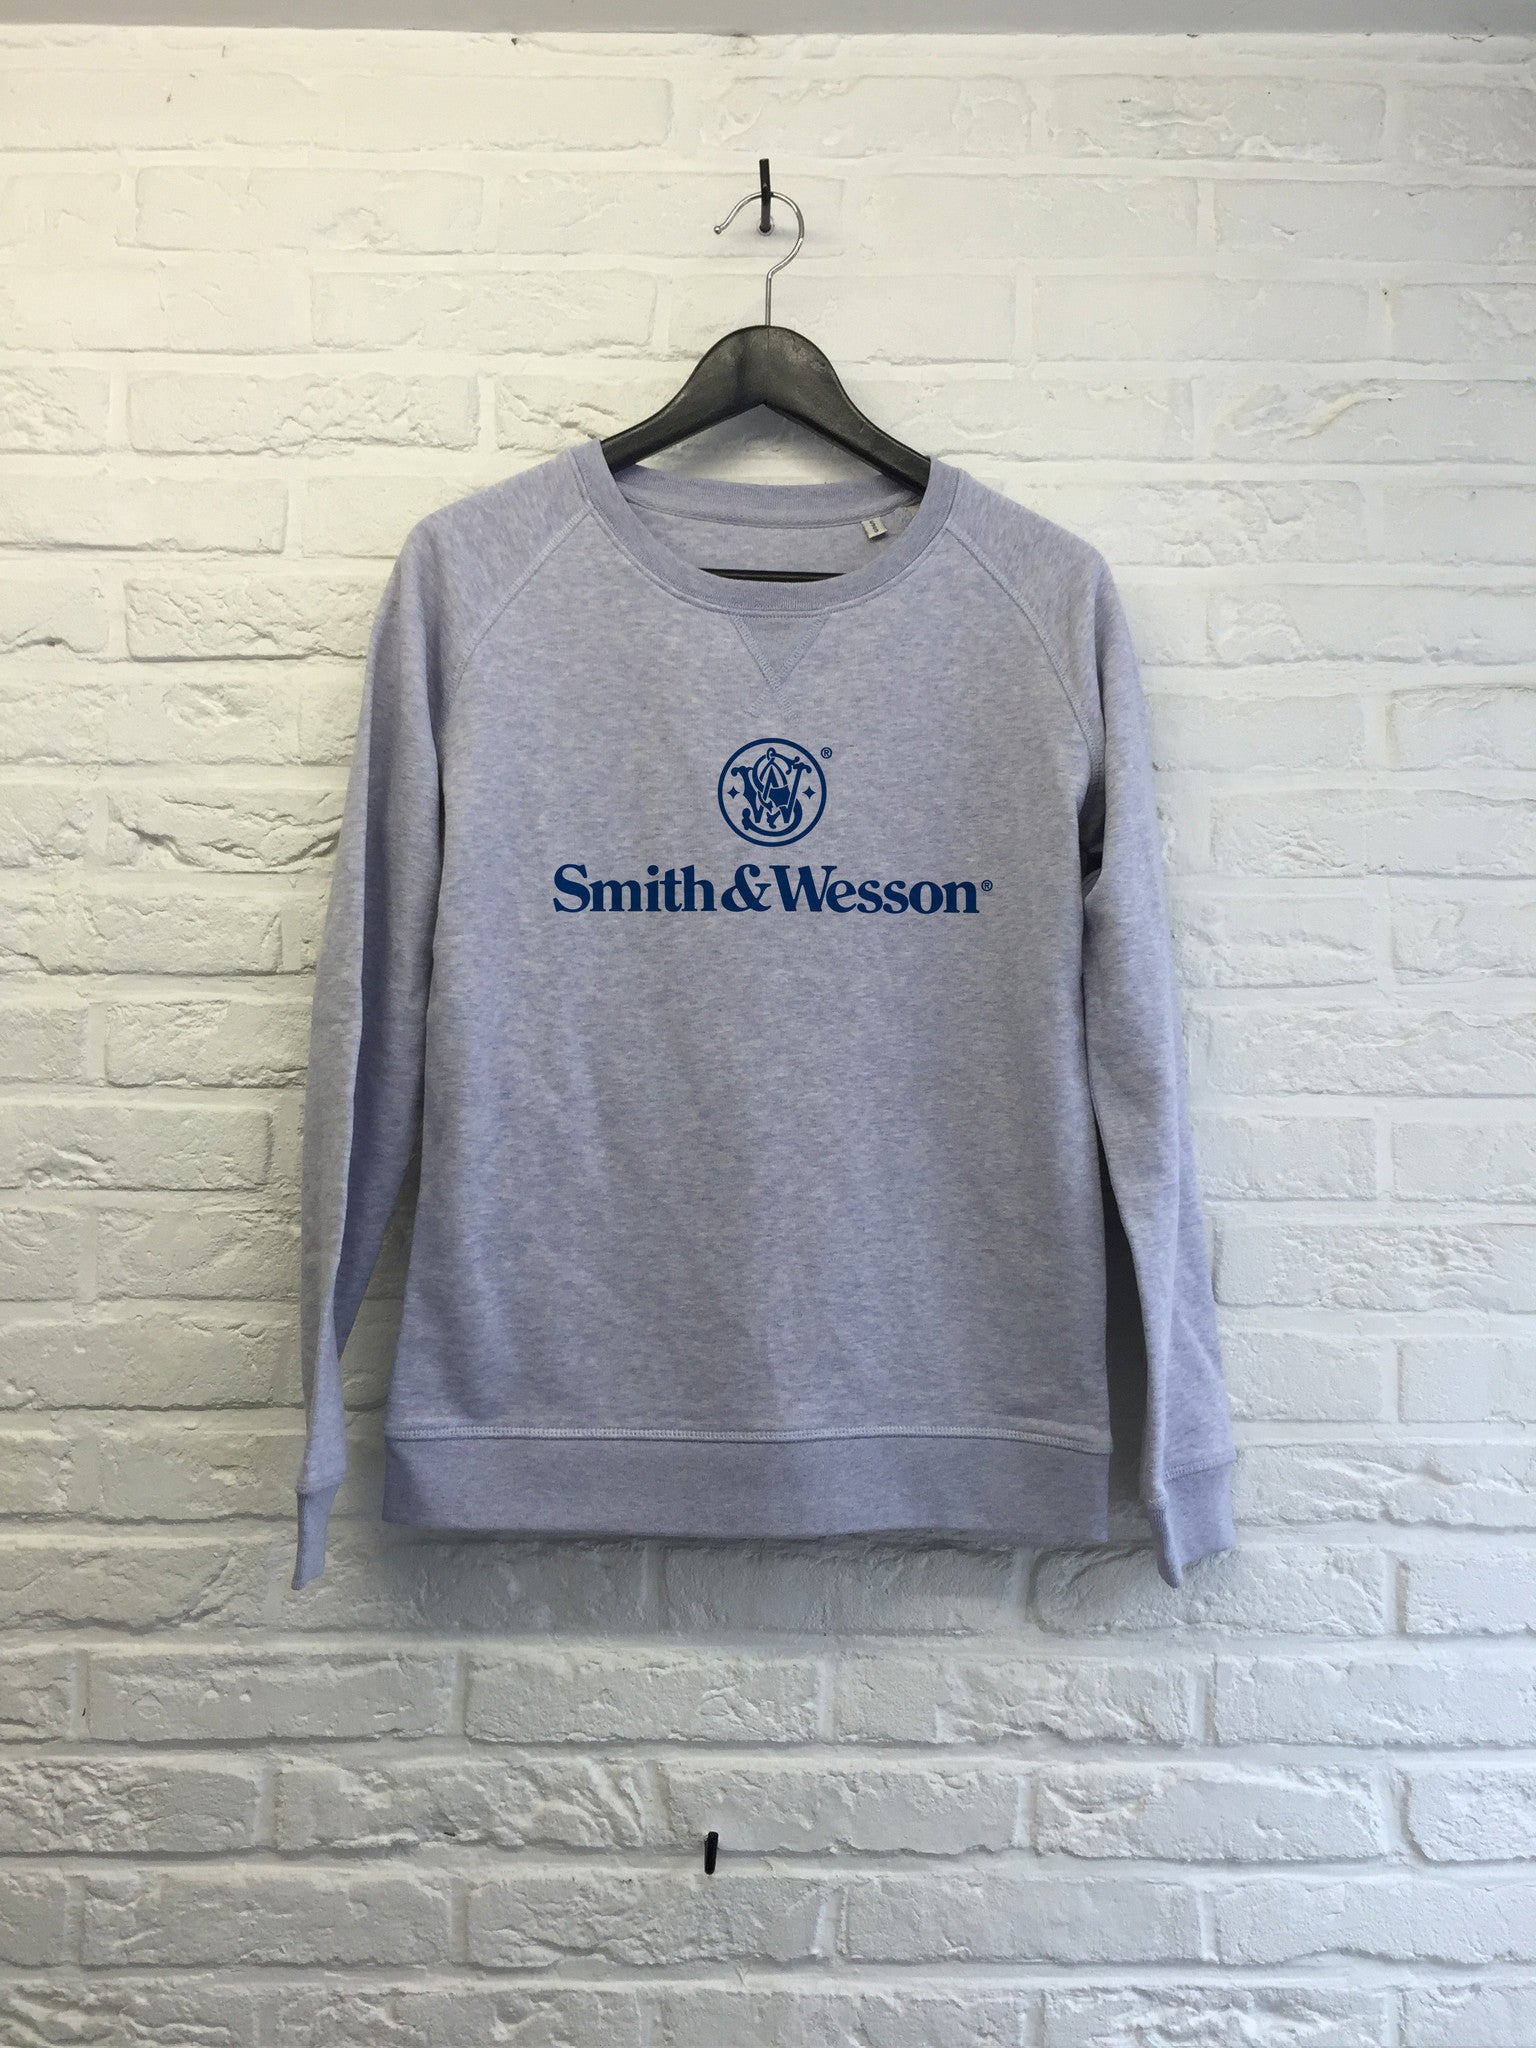 Smith & wesson - Sweat Femme-Sweat shirts-Atelier Amelot